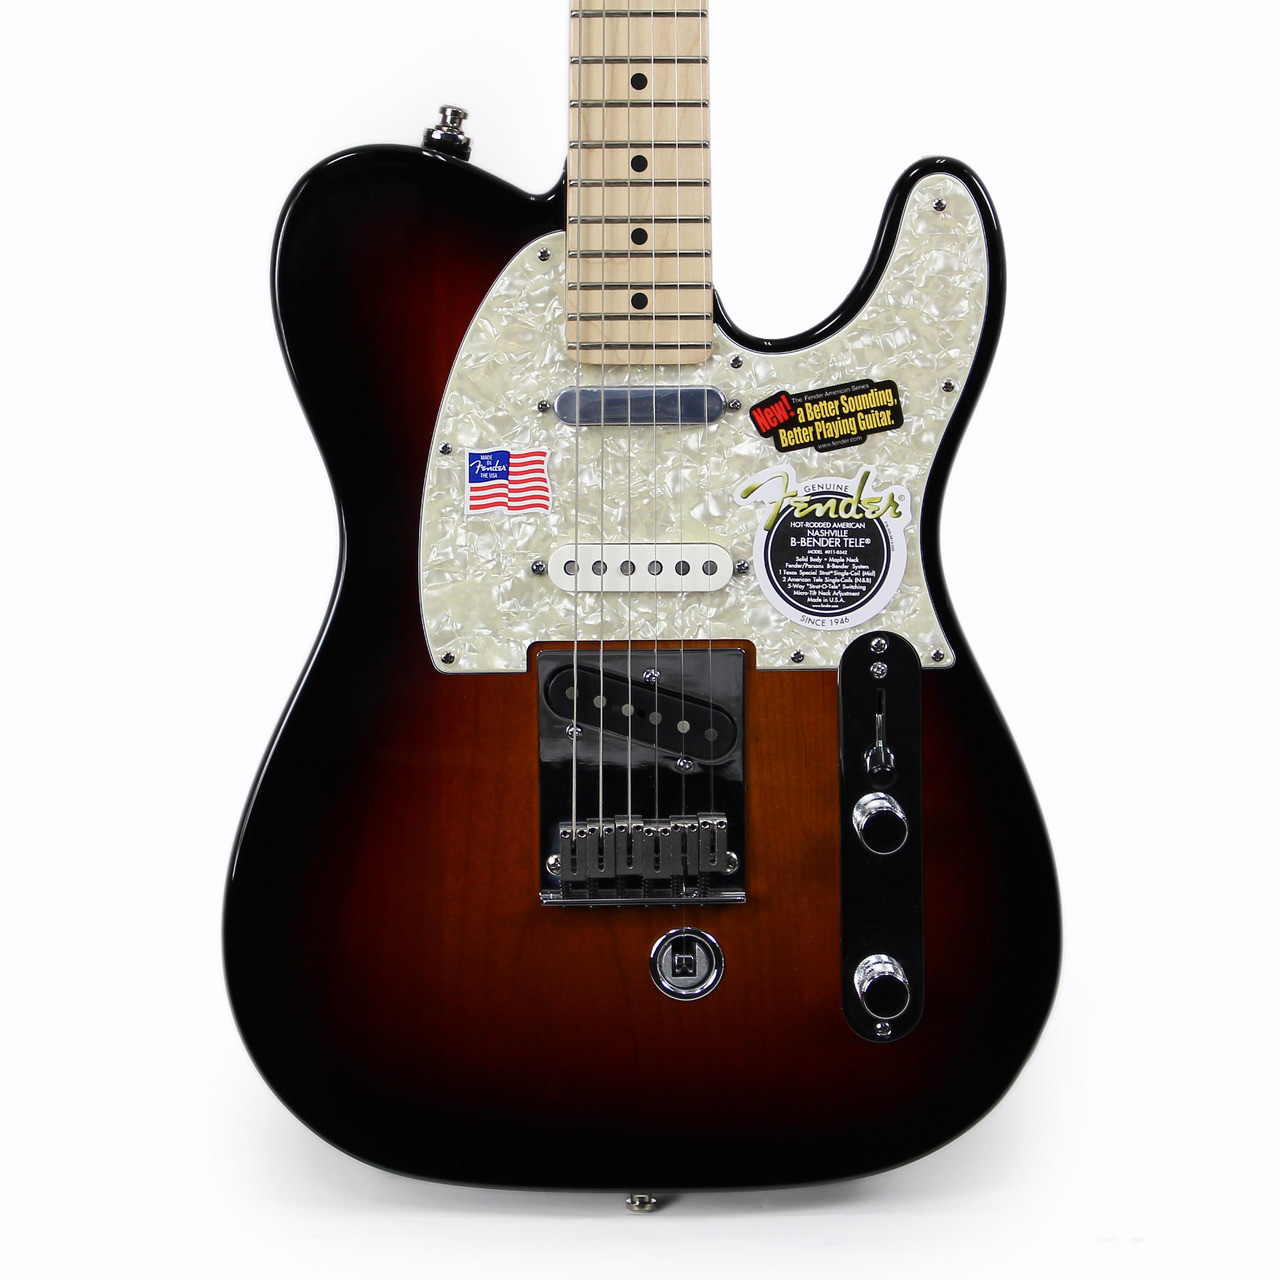 B Bender Guitar >> New Fender American Nashville B Bender Telecaster Electric Guitar In